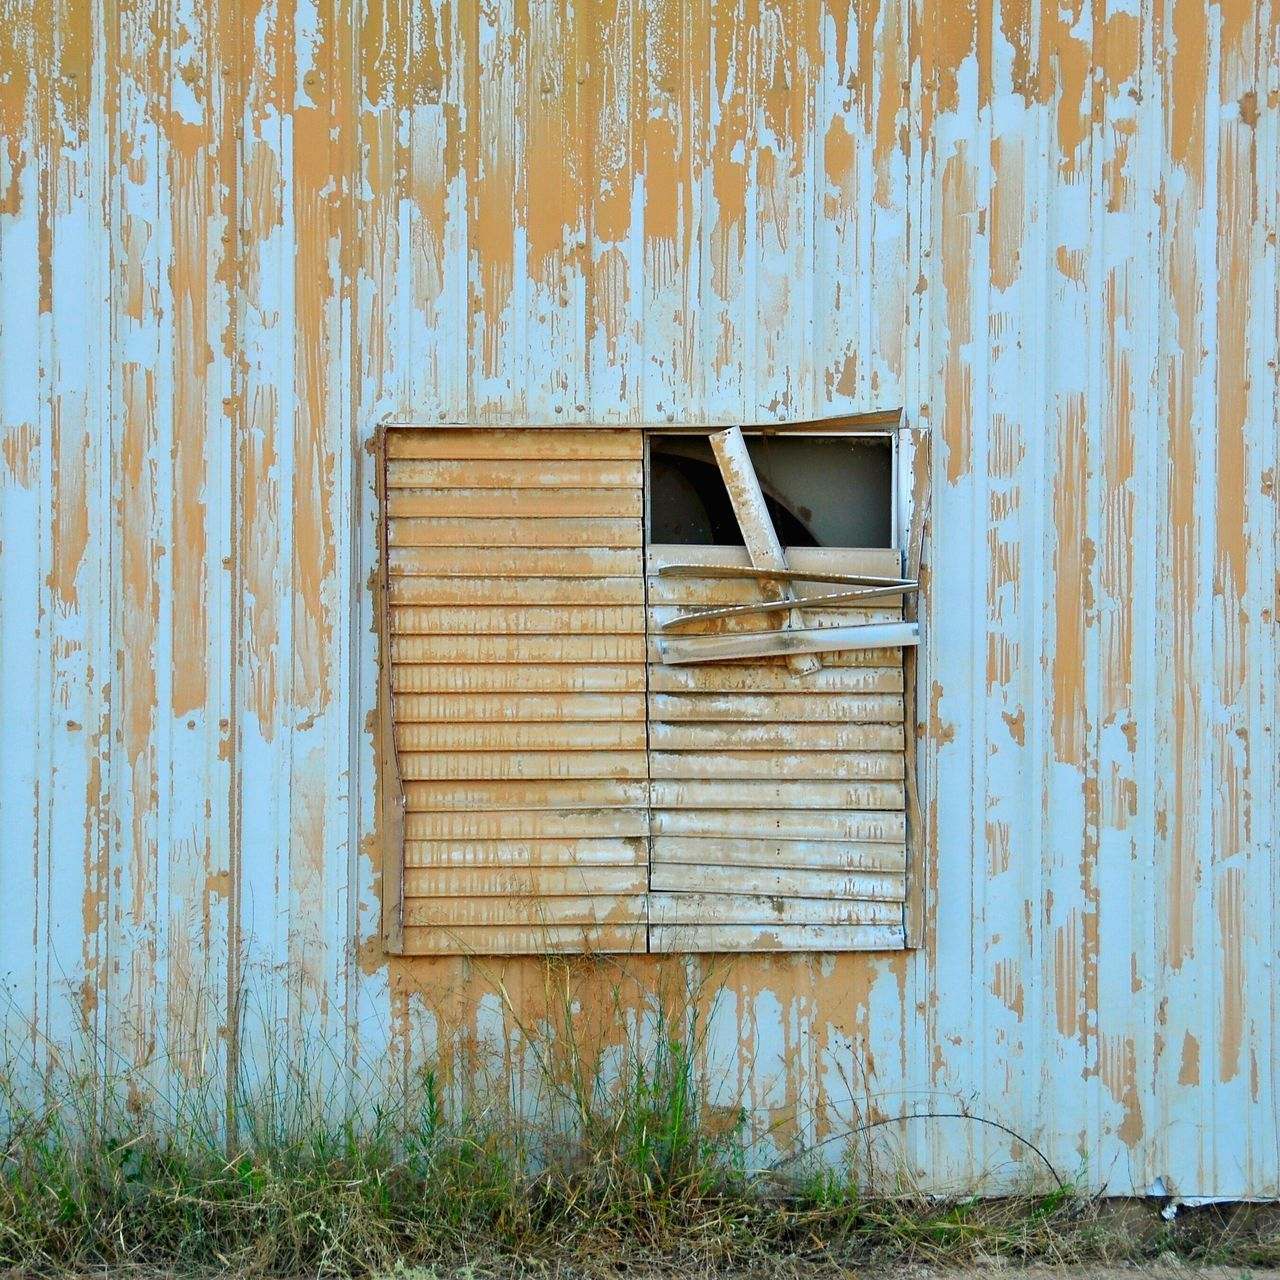 Window of opportunities. Architecture Built Structure House Building Exterior Window Jacob Ychye Photography JacobYchye Jacob Ychye Bad Condition No People Wood - Material Residential Building Damaged Day Outdoors Nature EyeEmNewHere